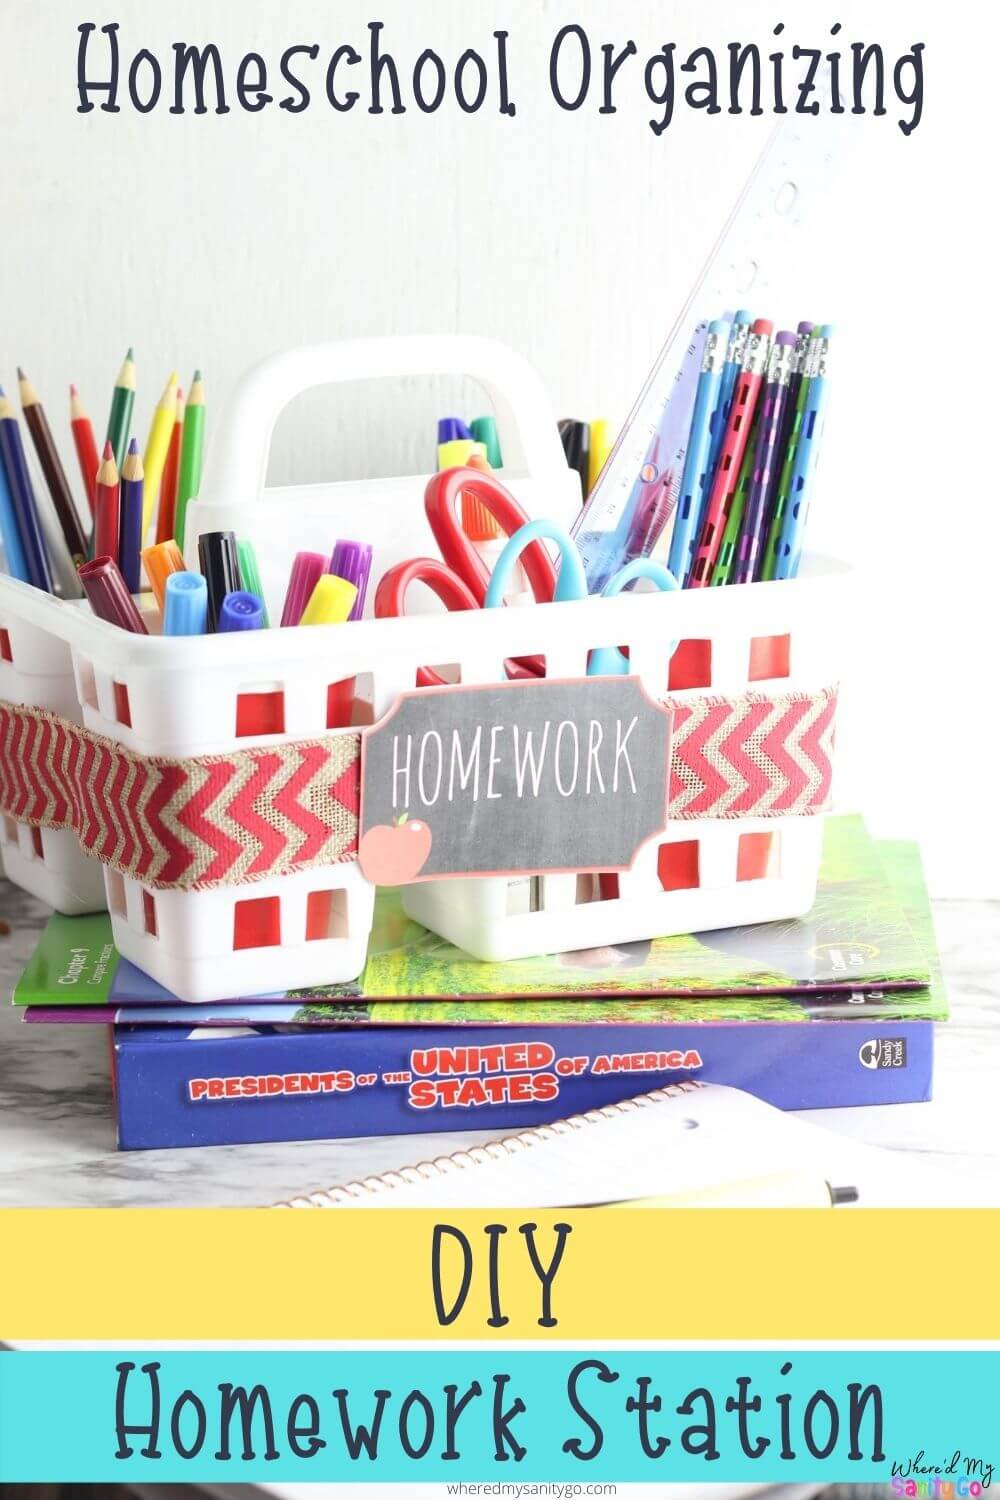 Dollar Tree Homework Station for Homeschool Organization School Supplies